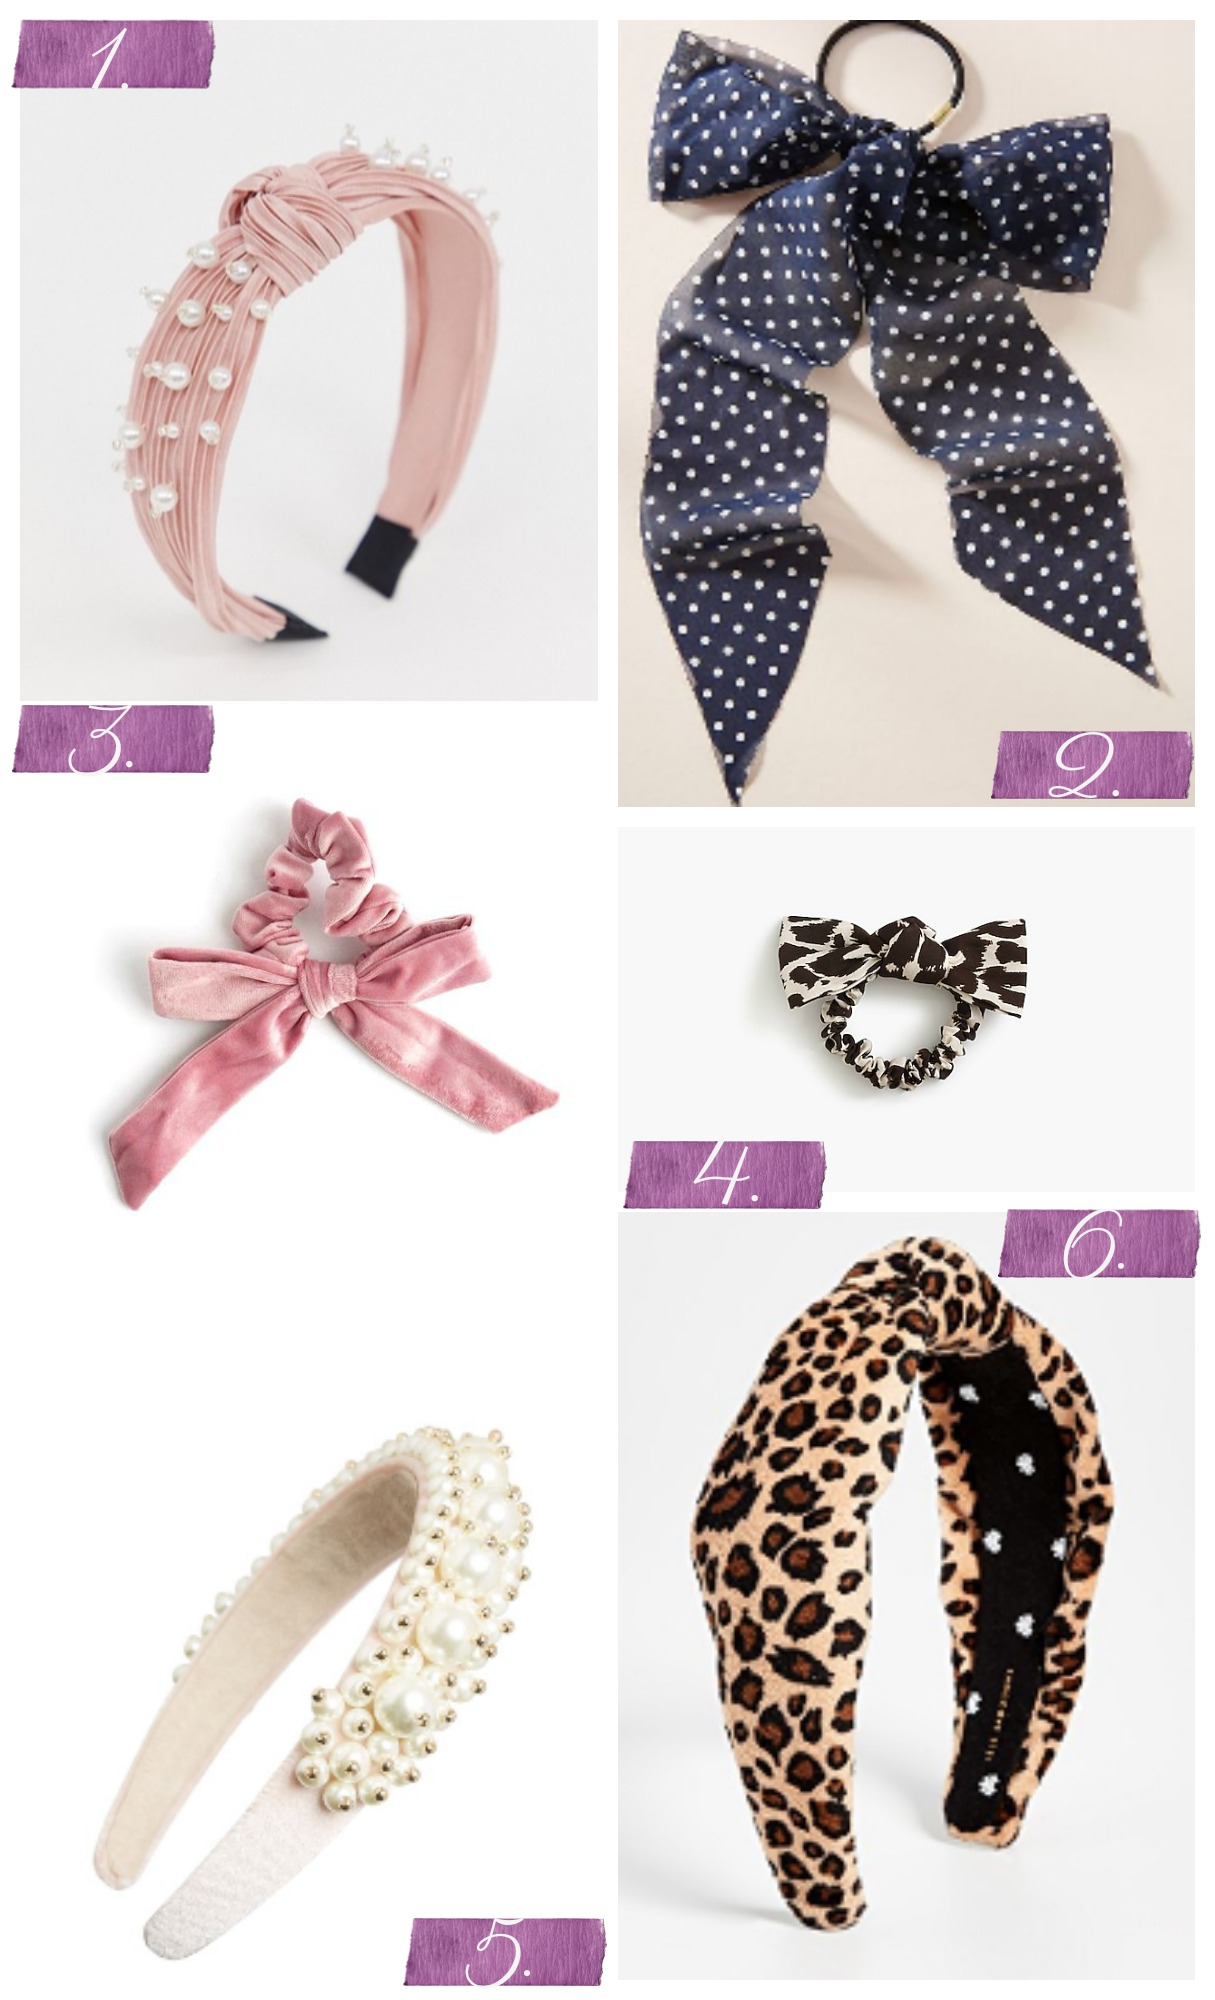 Tuesday's Cravings: Hair Accessories